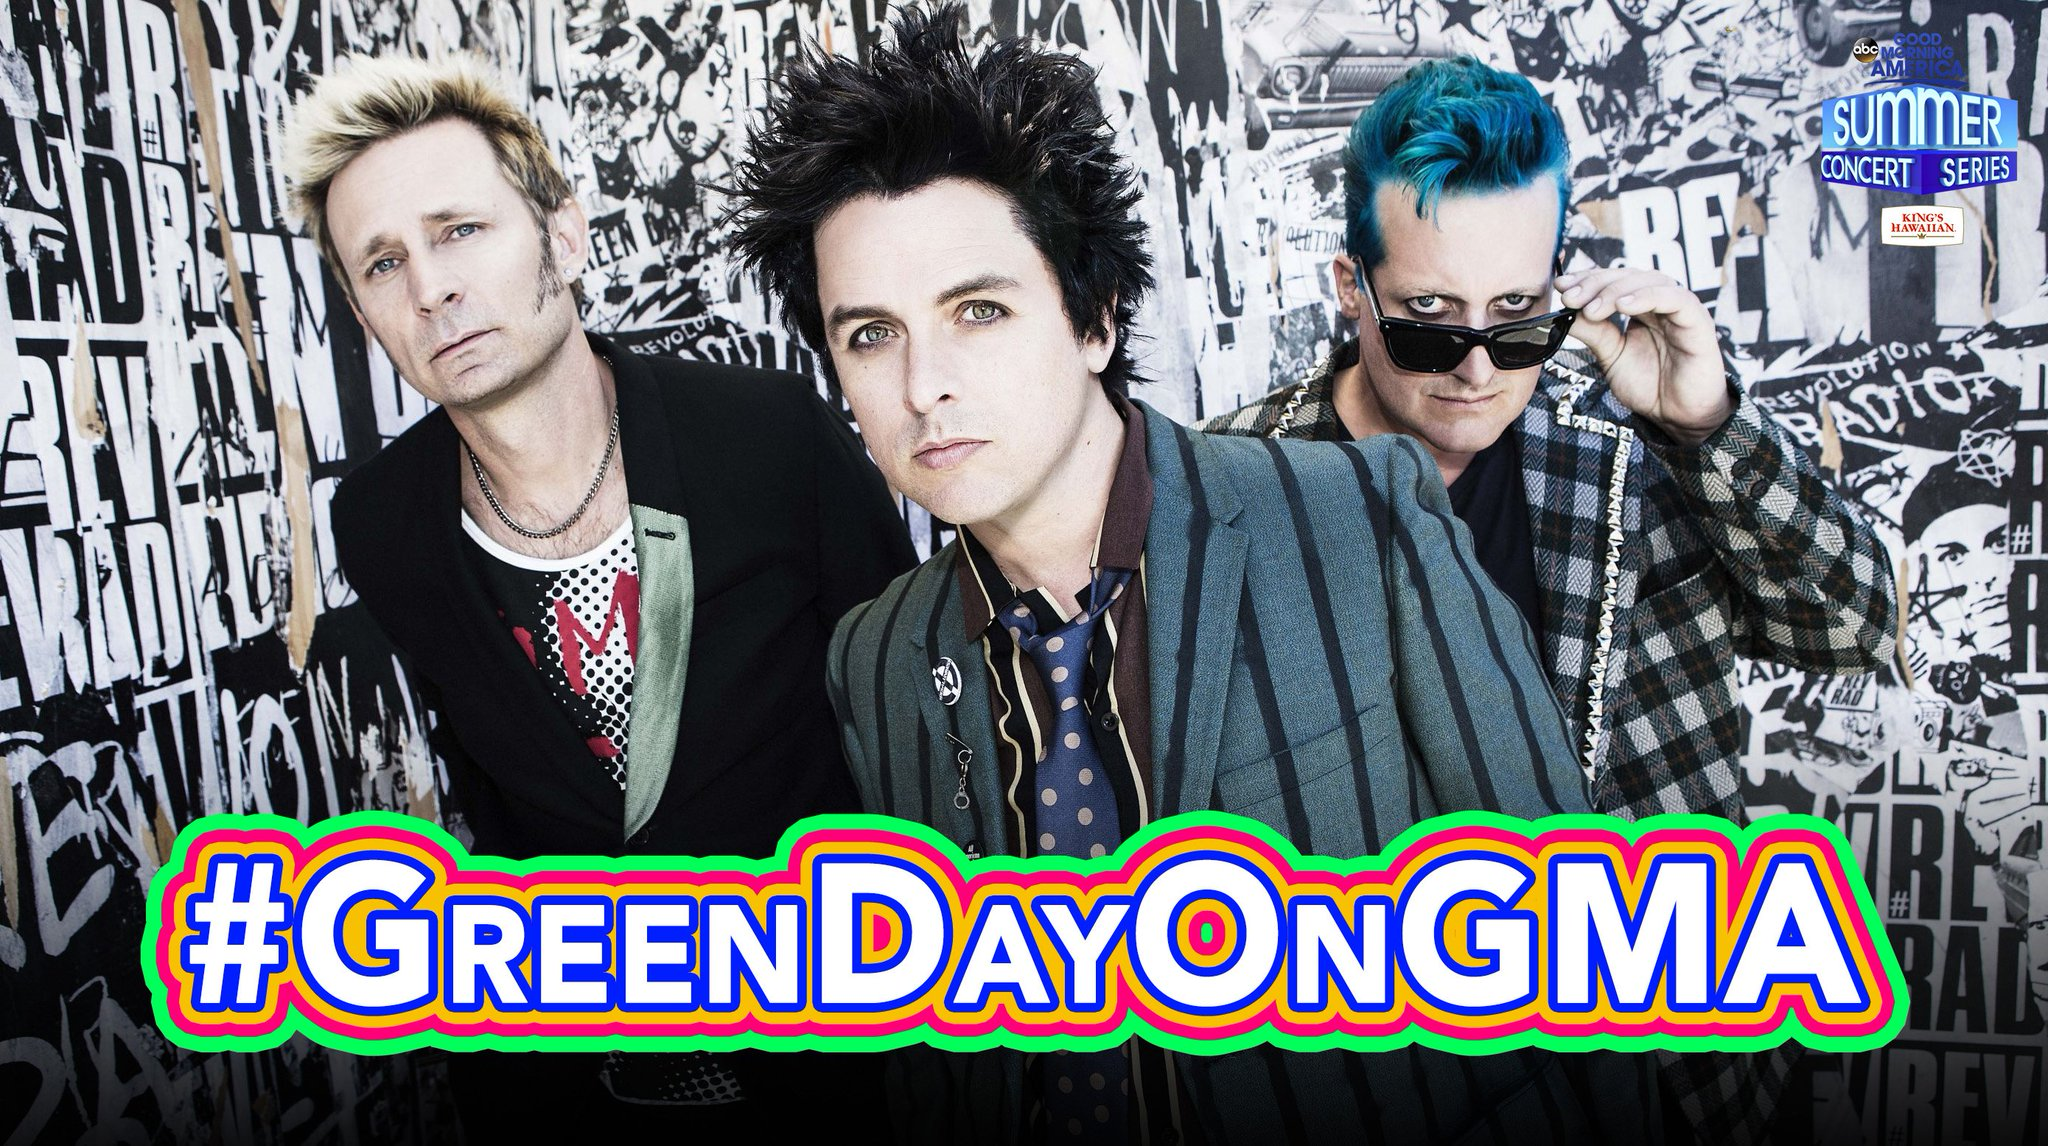 Retweet if you're excited for @GreenDay!  Tweet with #GreenDayOnGMA all morning long! https://t.co/gNlXAyL5aZ